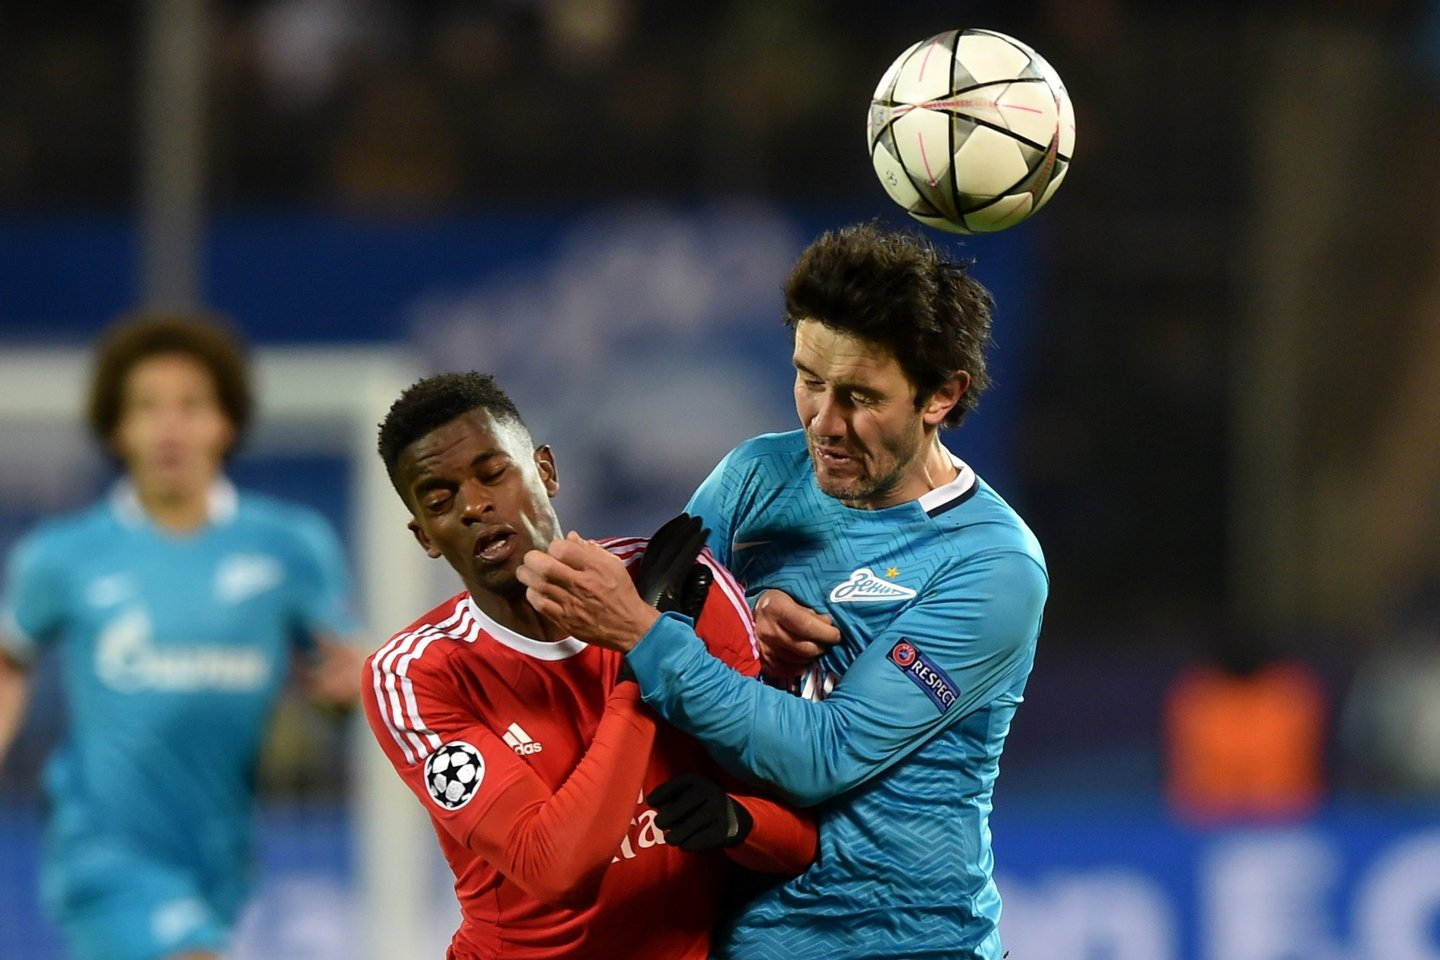 Benfica's defender Nelson Semedo (L) vies for the ball with Zenit's midfielder Yuri Zhirkov during the second-leg round of 16 UEFA Champions League football match FC Zenit vs SL Benfica at the Petrovsky stadium in St. Petersburg on March 9, 2016. AFP PHOTO / KIRILL KUDRYAVTSEV / AFP / KIRILL KUDRYAVTSEV (Photo credit should read KIRILL KUDRYAVTSEV/AFP/Getty Images)